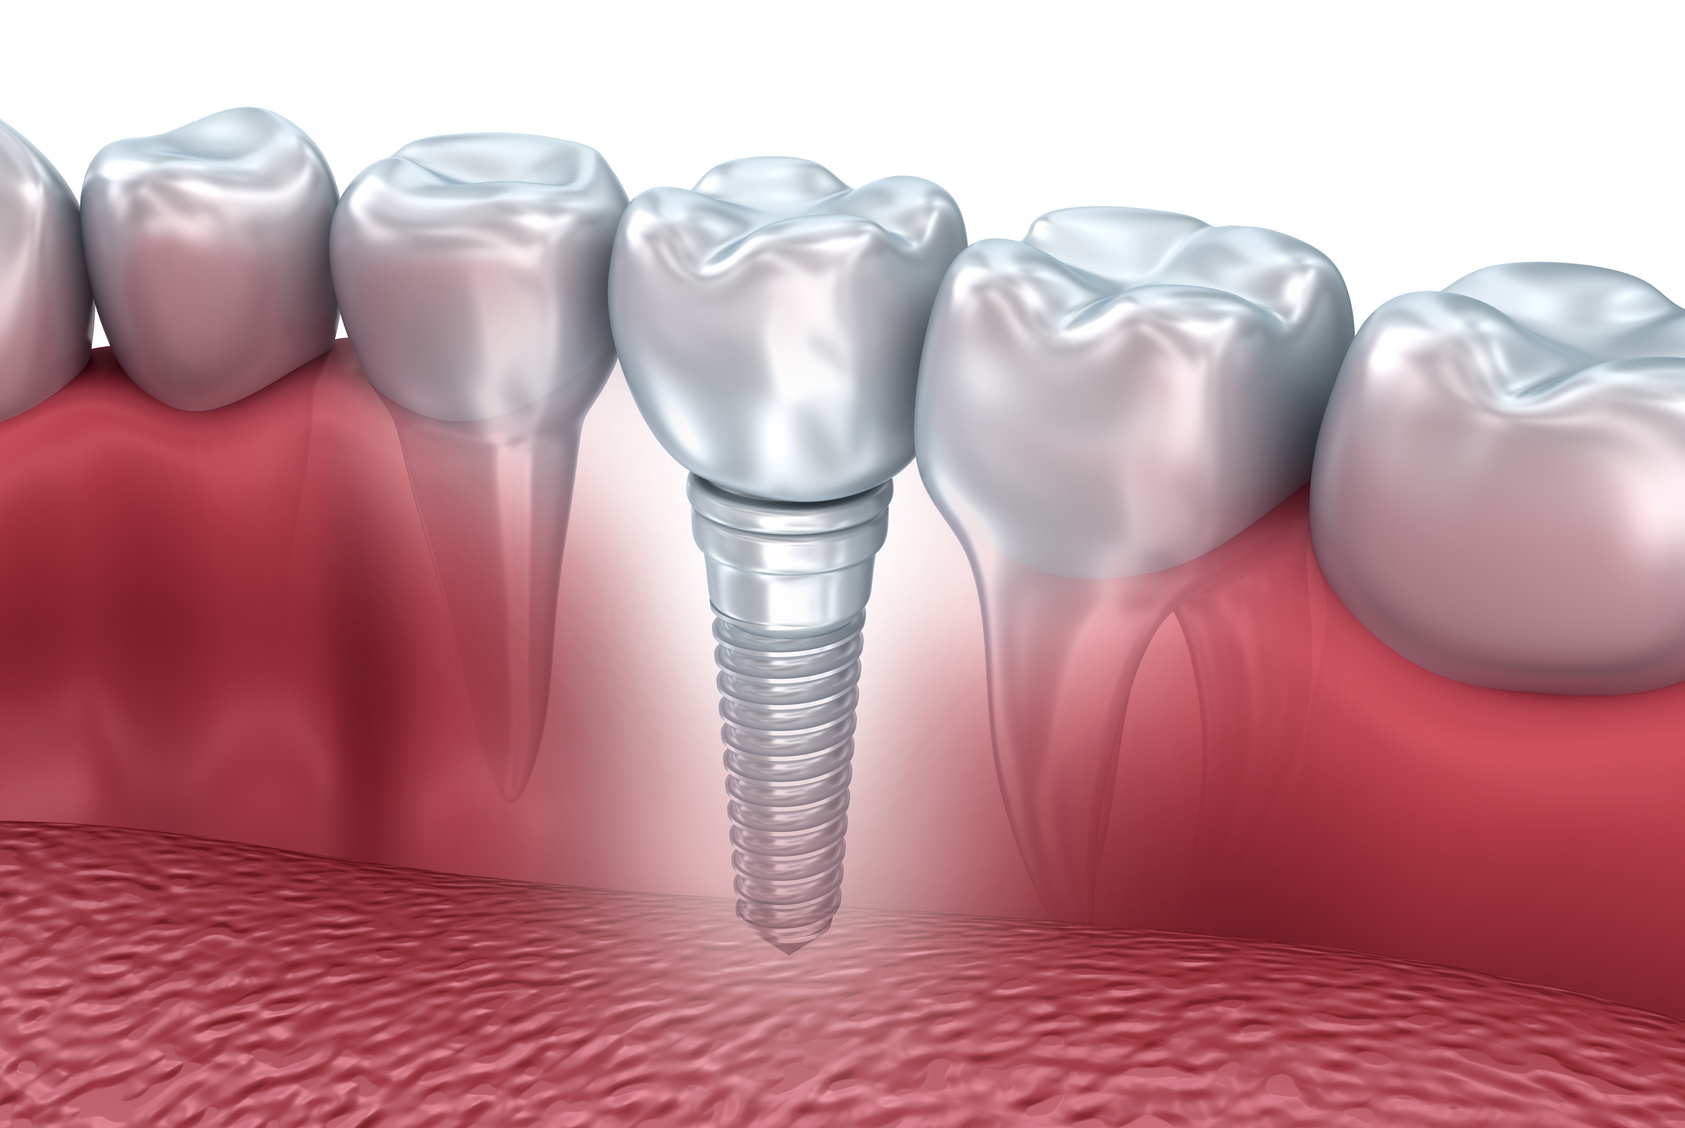 dental implant cost guide per country